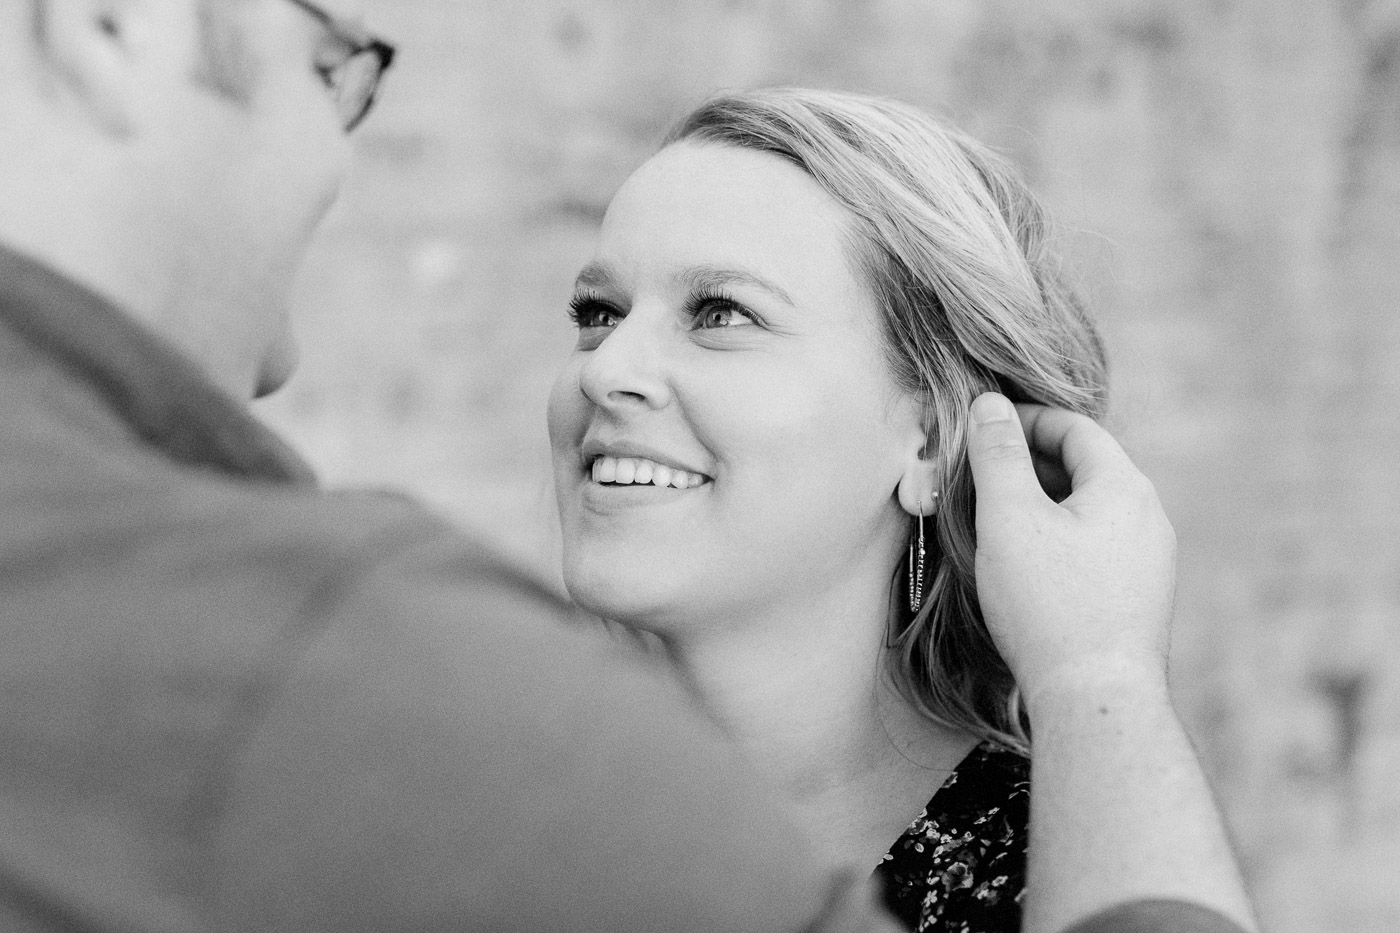 Andrew is touching Jaymee's hair during their Huntington beach state park engagement session